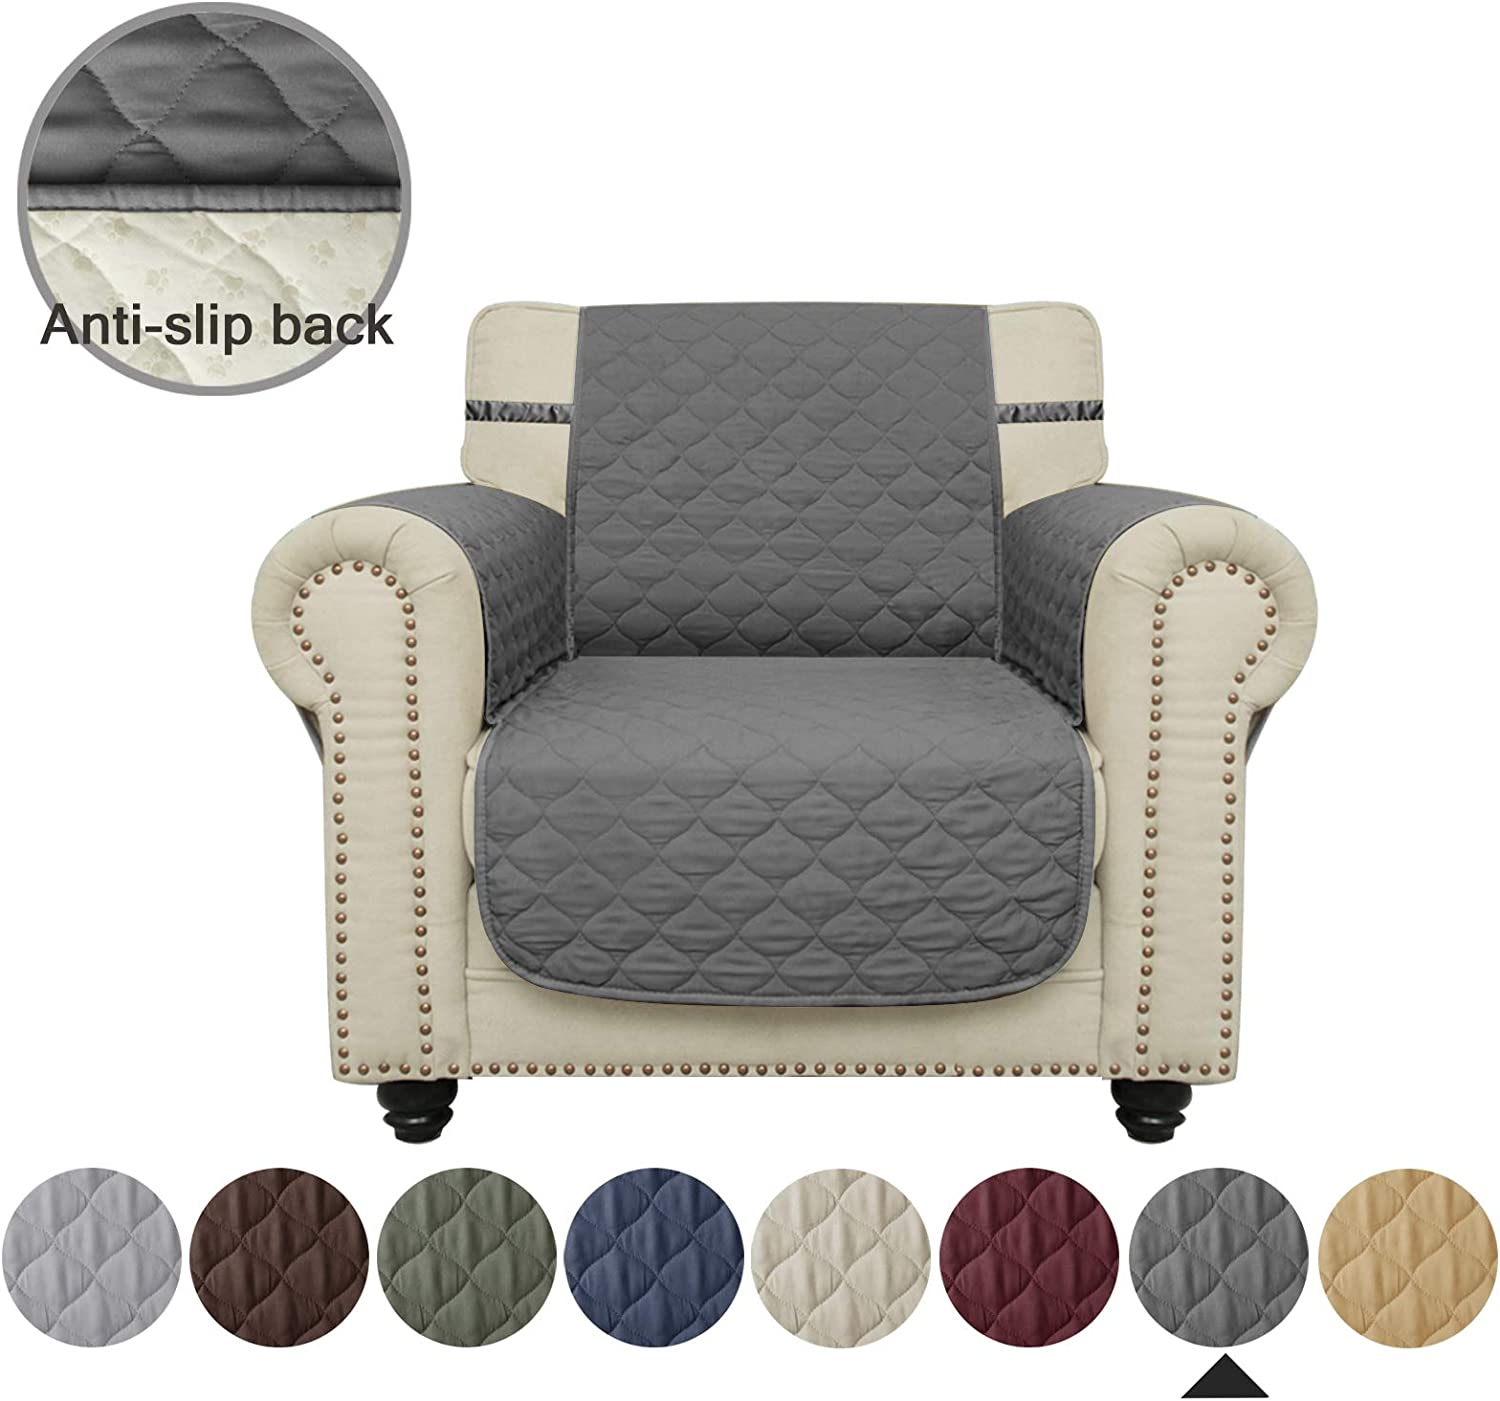 Furniture Protector Ameritex Chair Cover Waterproof Stay in Place 23, Light Grey Chair Slipcovers for Dogs